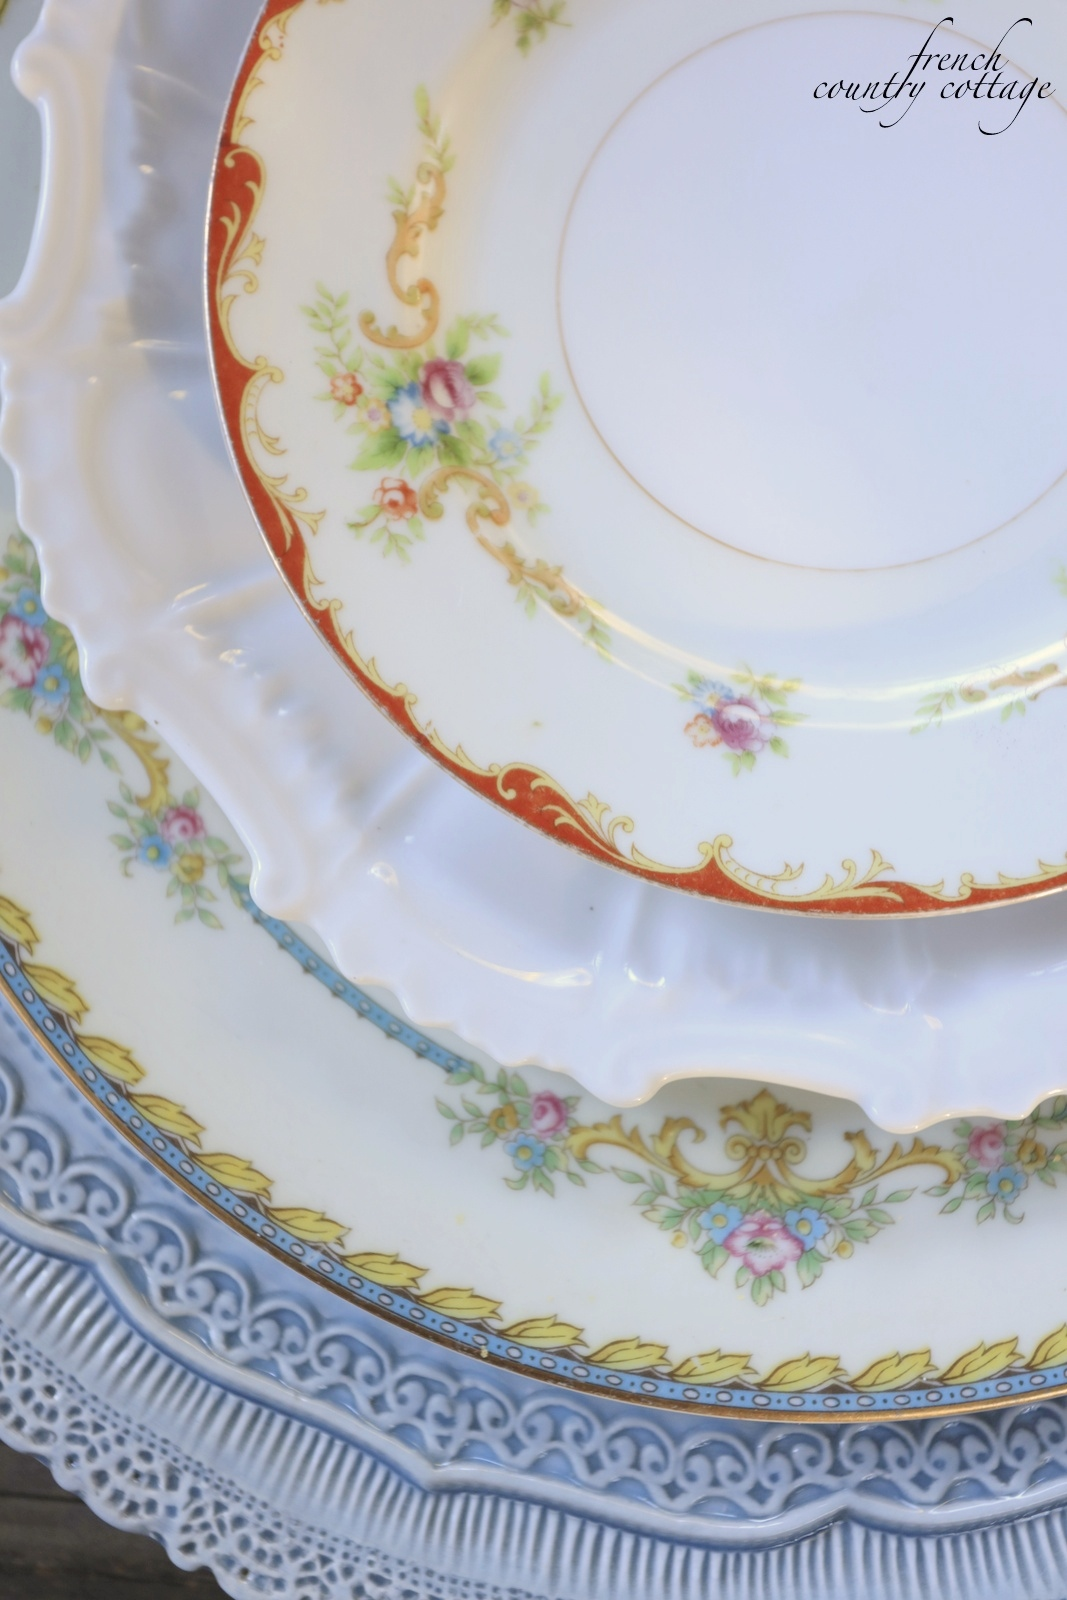 Vintage plates layered on table & Mix u0026 Mingle~ Vintage place settings - FRENCH COUNTRY COTTAGE